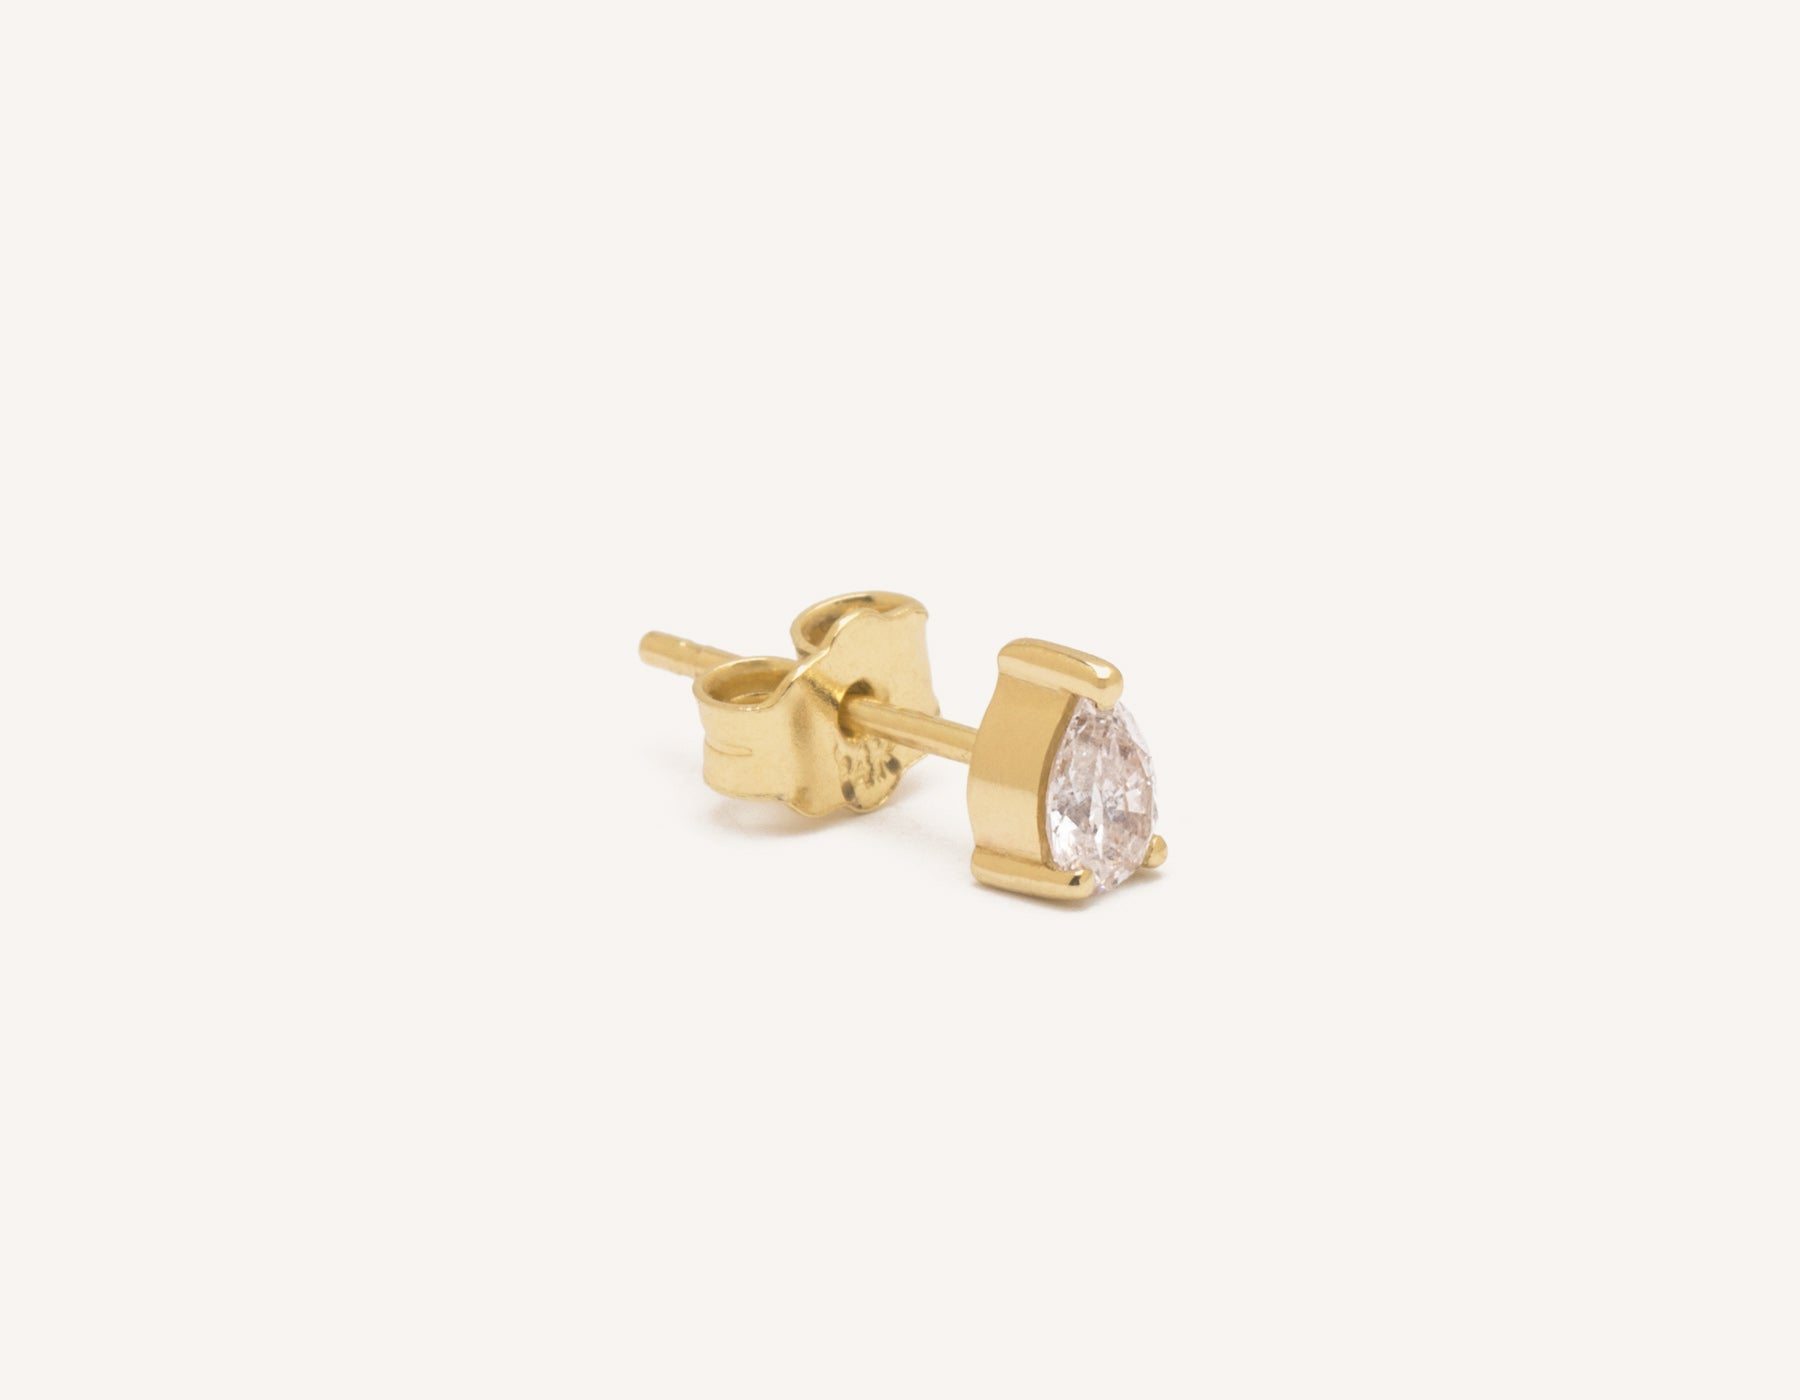 Modern Minimalist .15ct Pear Diamond Stud earrings Vrai and Oro, 14K Yellow Gold